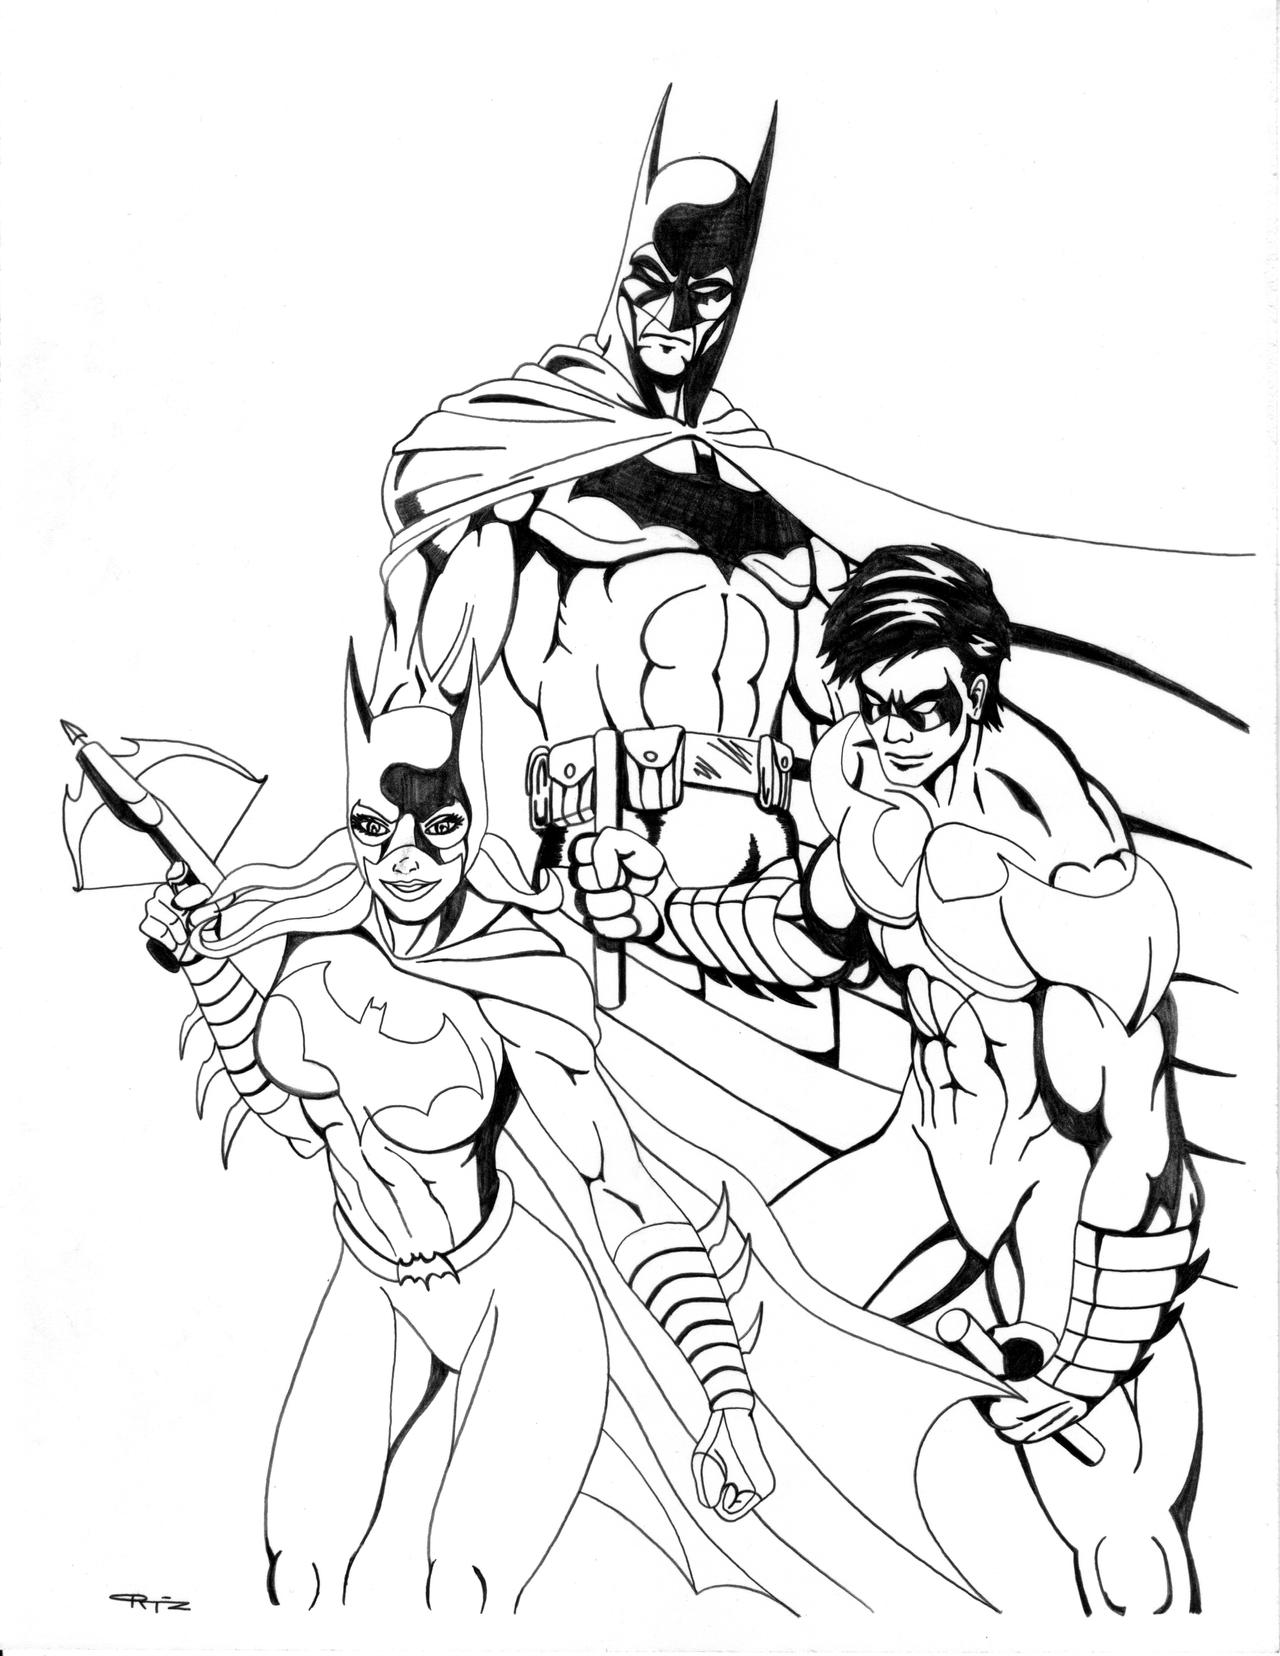 Comic book robin coloring pages ~ Batman Batgirl Nightwing Pencils by ESO2001 on DeviantArt